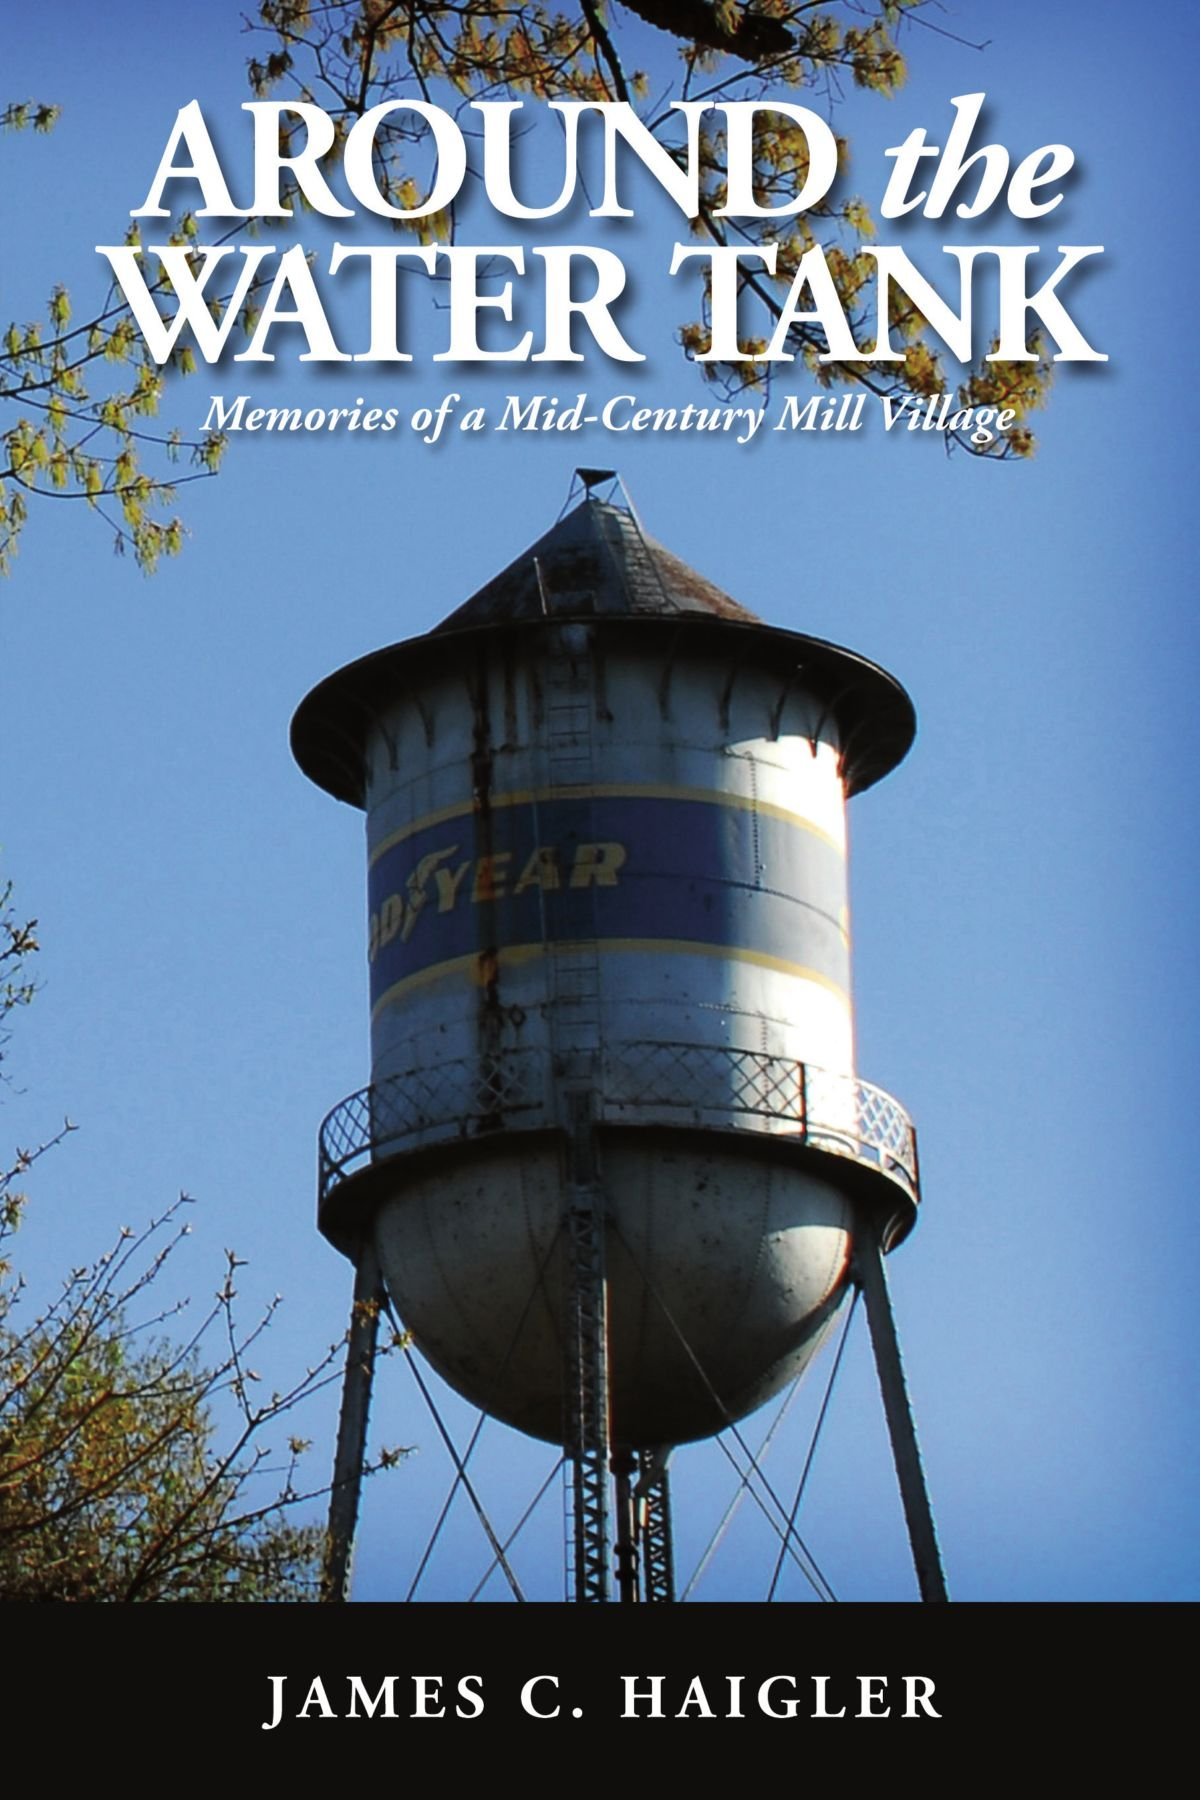 Download Around the Water Tank: Memories of a Mid-Century Mill Village PDF Text fb2 ebook